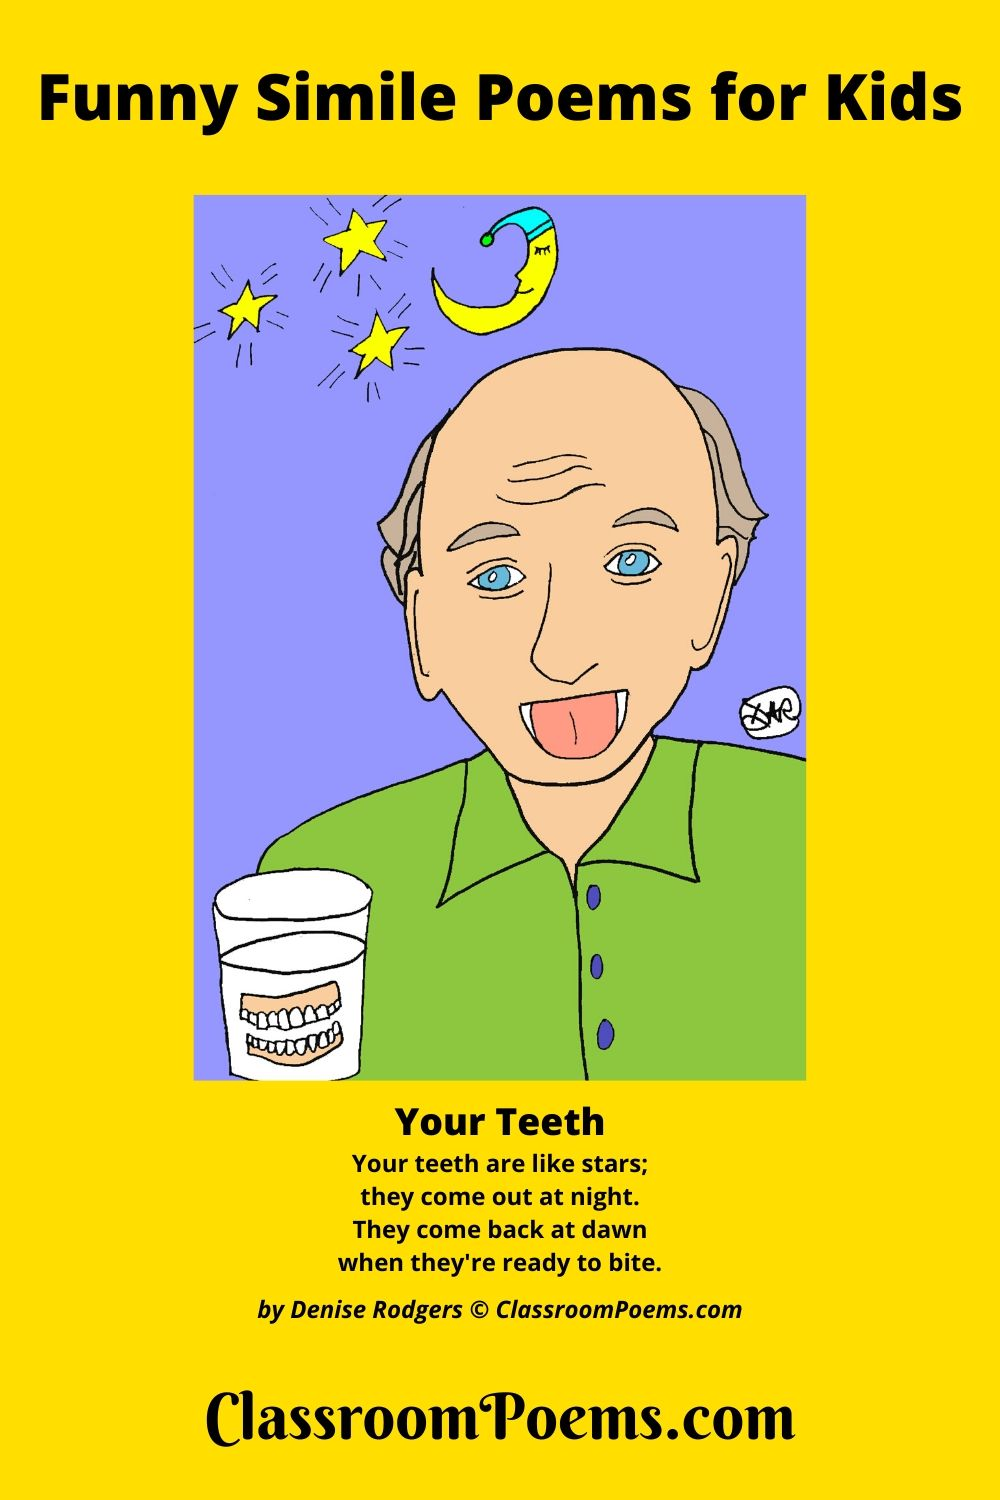 Man with dentures. Man with false teeth. Teeth in glass. Funny simile poems by Denise Rodgers on ClassroomPoems.com.